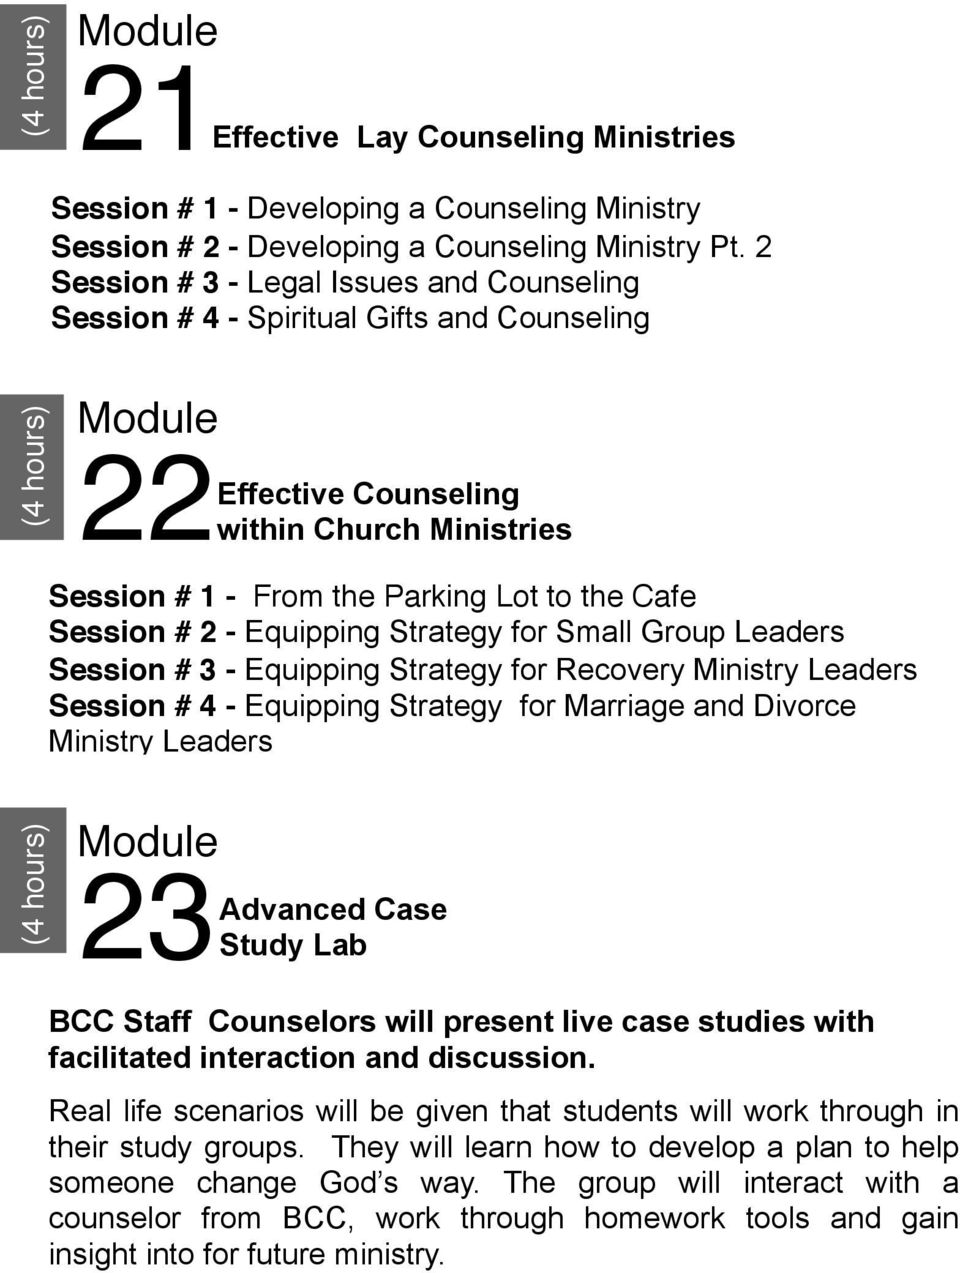 Equipping Strategy for Small Group Leaders Session # 3 - Equipping Strategy for Recovery Ministry Leaders Session # 4 - Equipping Strategy for Marriage and Divorce Ministry Leaders (4 hours) 23